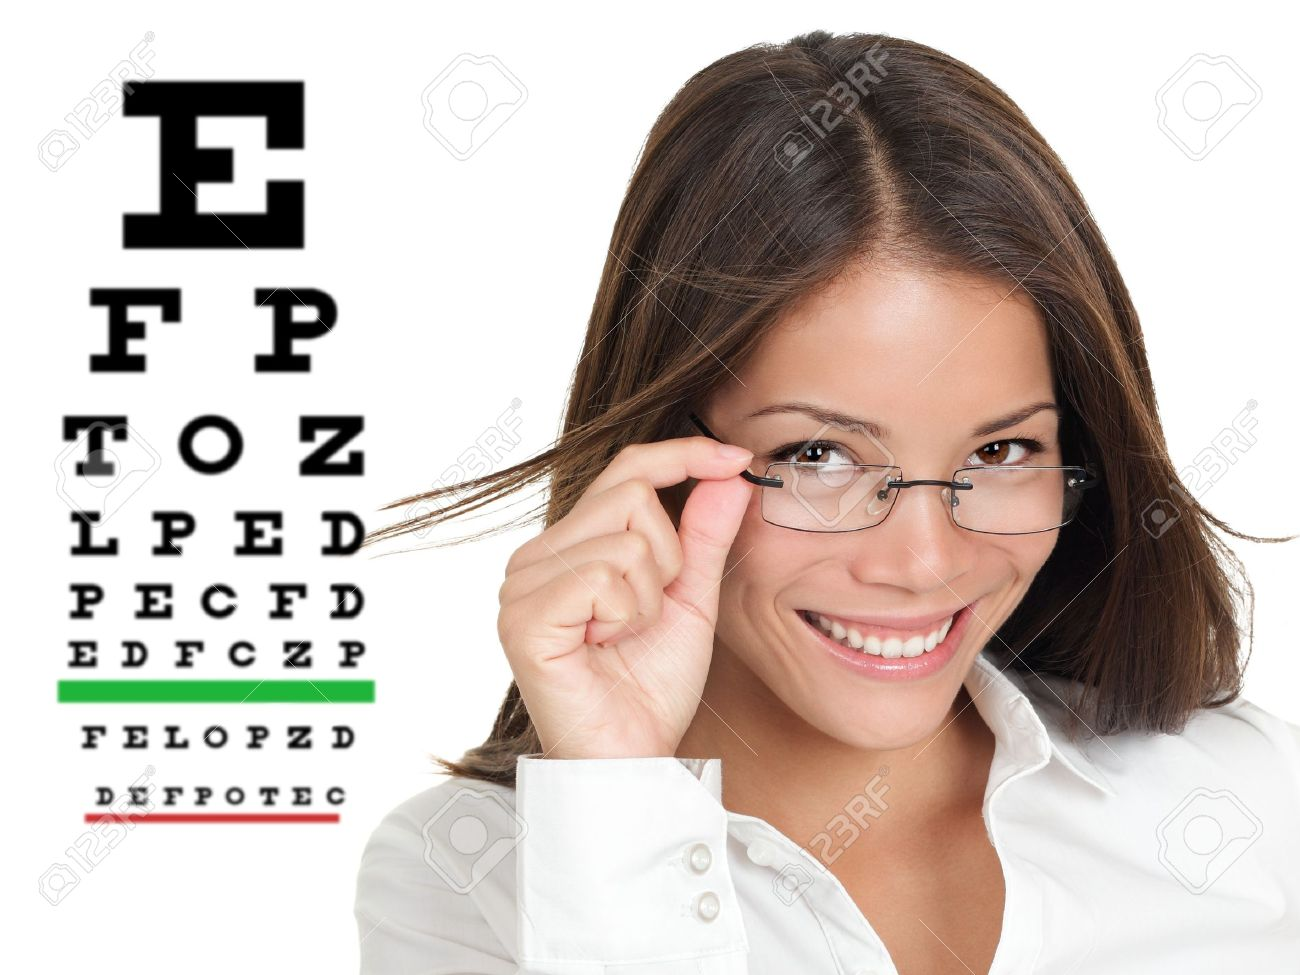 Optician or optometrist wearing glasses standing by Snellen eye exam chart  Female Caucasian   Asian Chinese model isolated on white background Stock Photo - 13281730